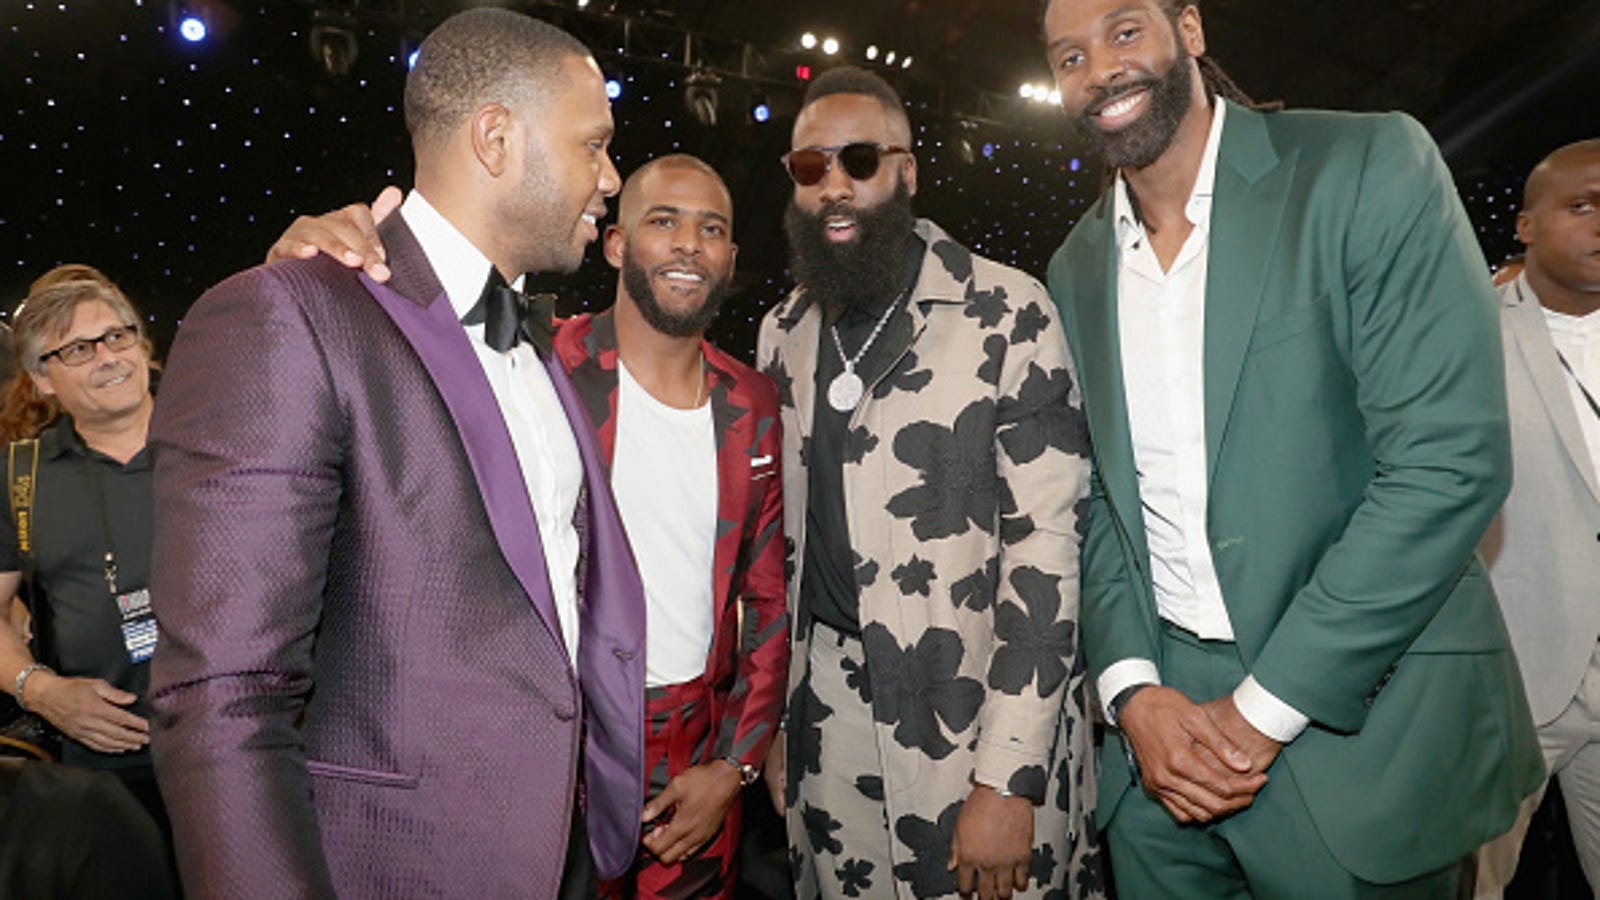 9522d3679e35 Baller Alert: Is This the 2018 NBA Awards or the NBA Fashion Awards?